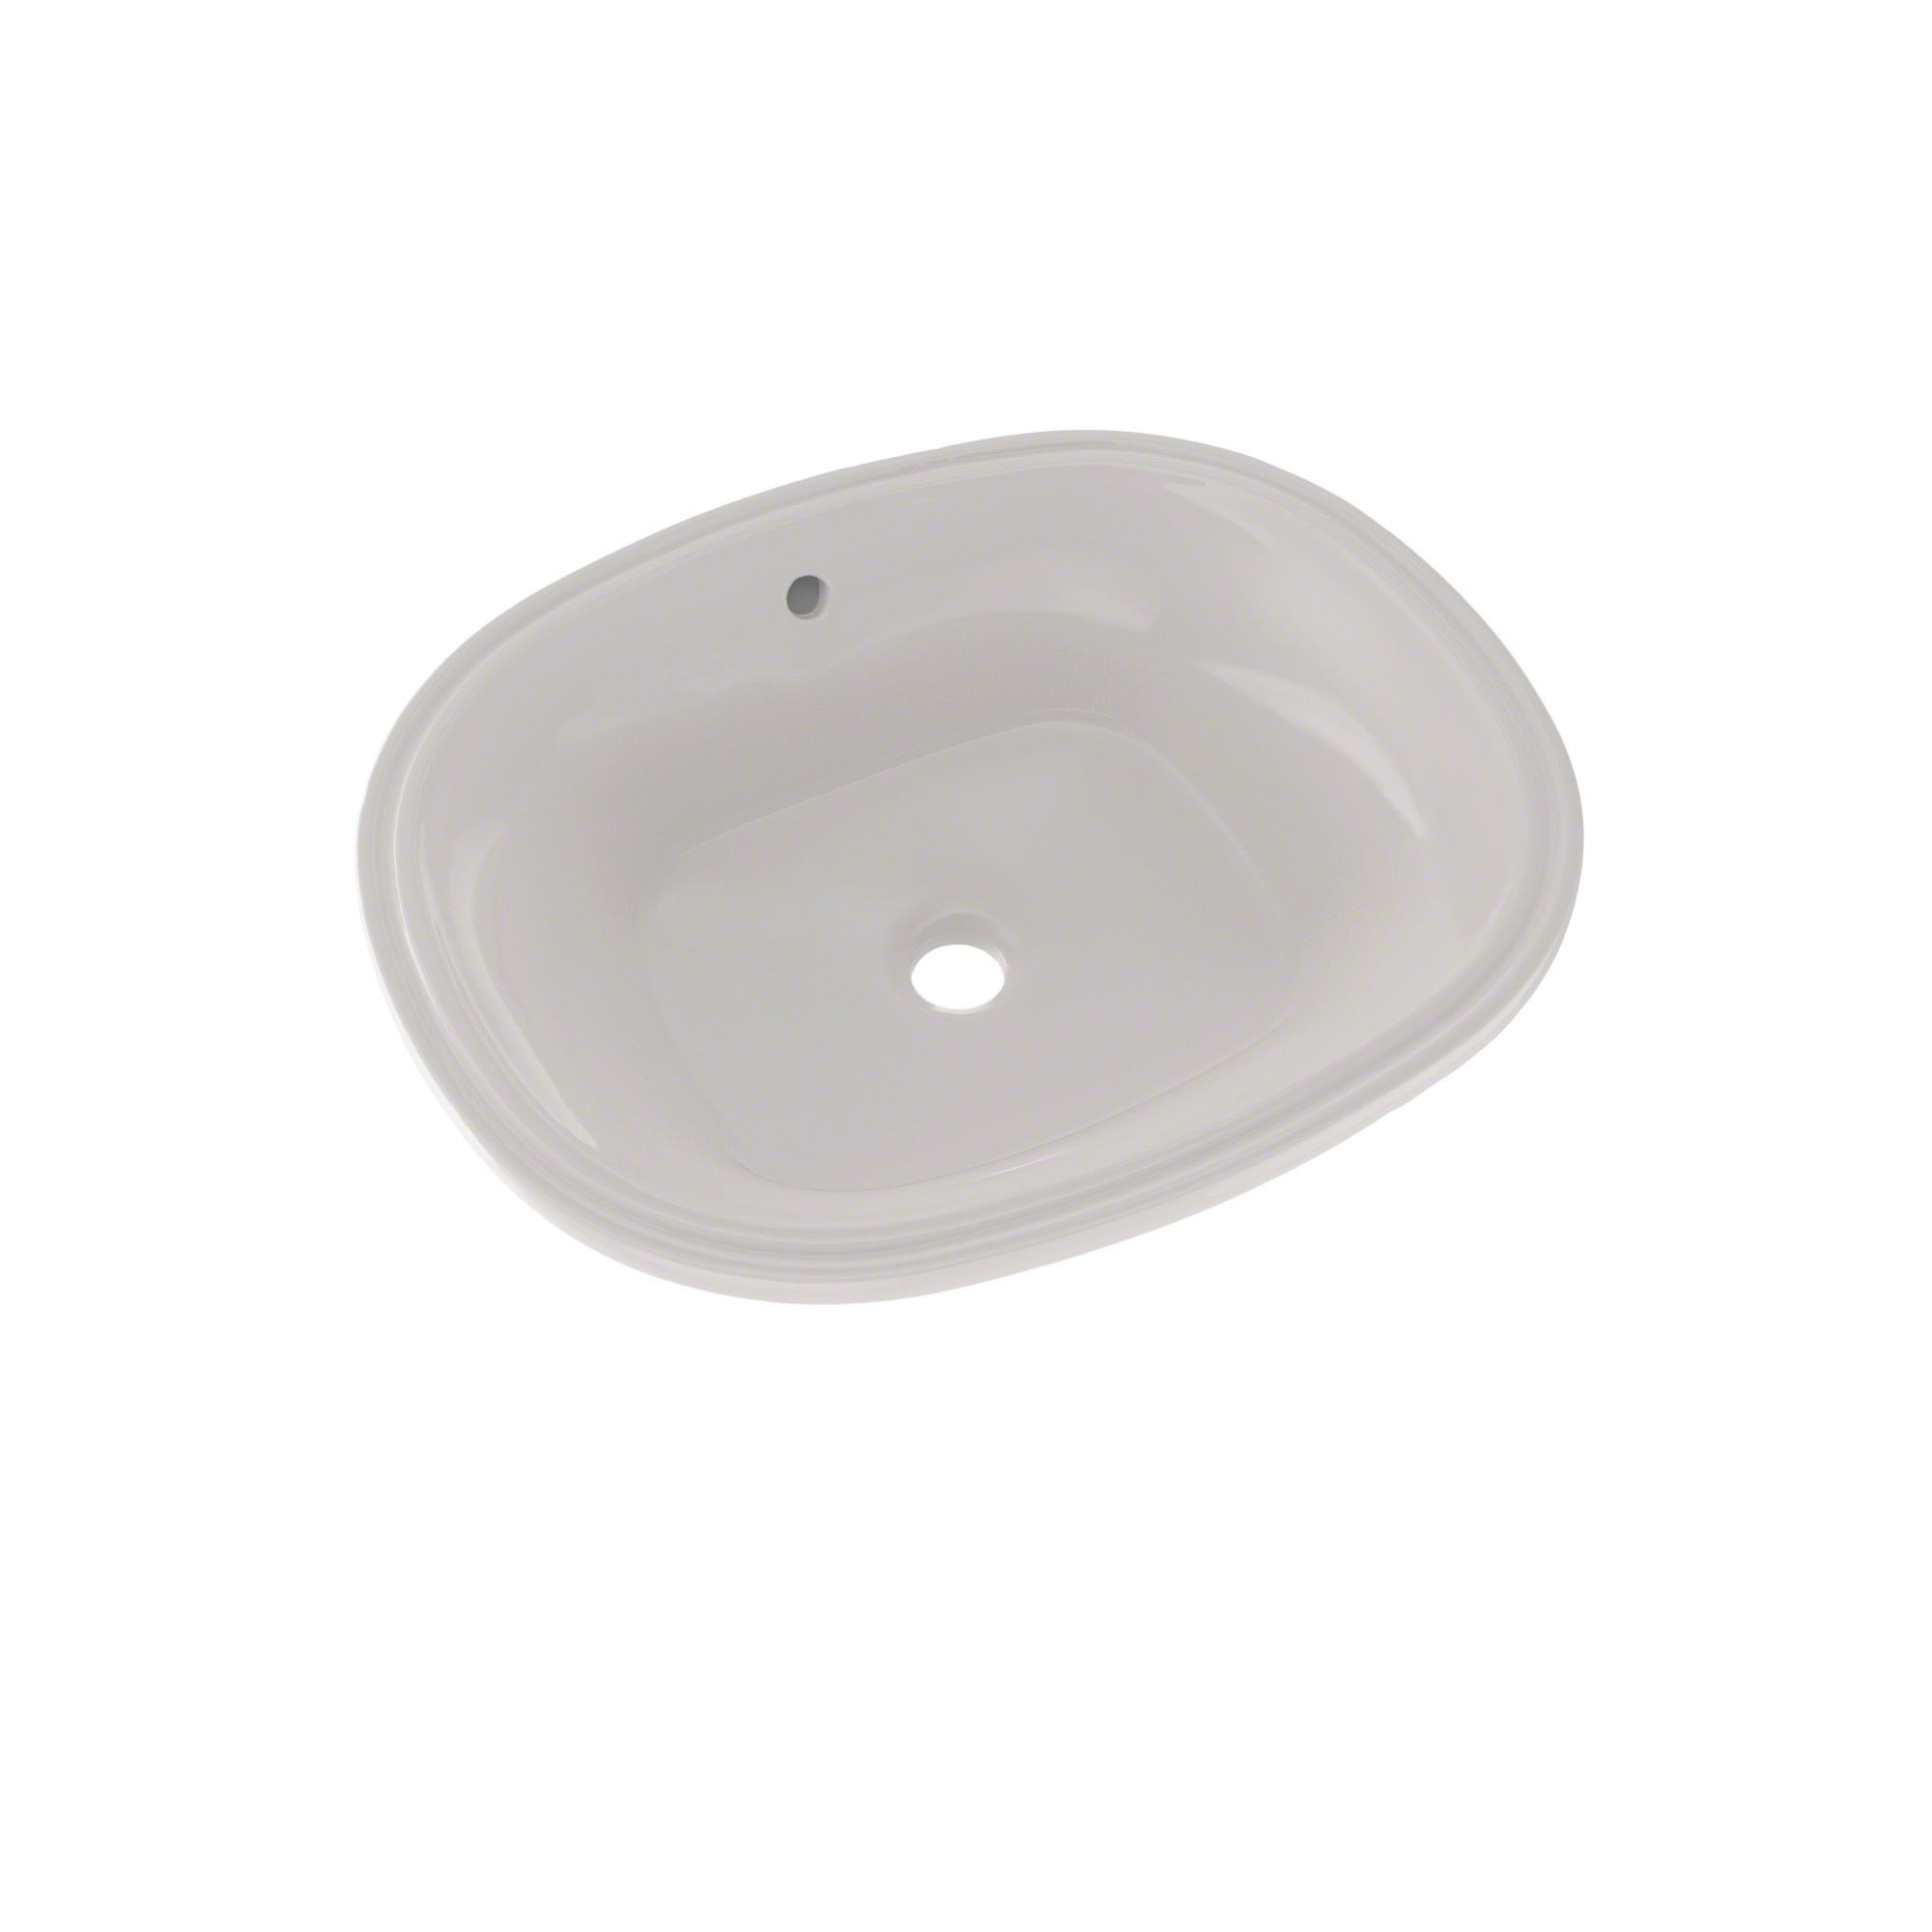 Toto Maris 17 5 8 X 14 9 16 Oval Undermount Bathroom Sink With Cefiontect Colonial White Lt483g 11 Undermount Bathroom Sink Sink Glass Sink